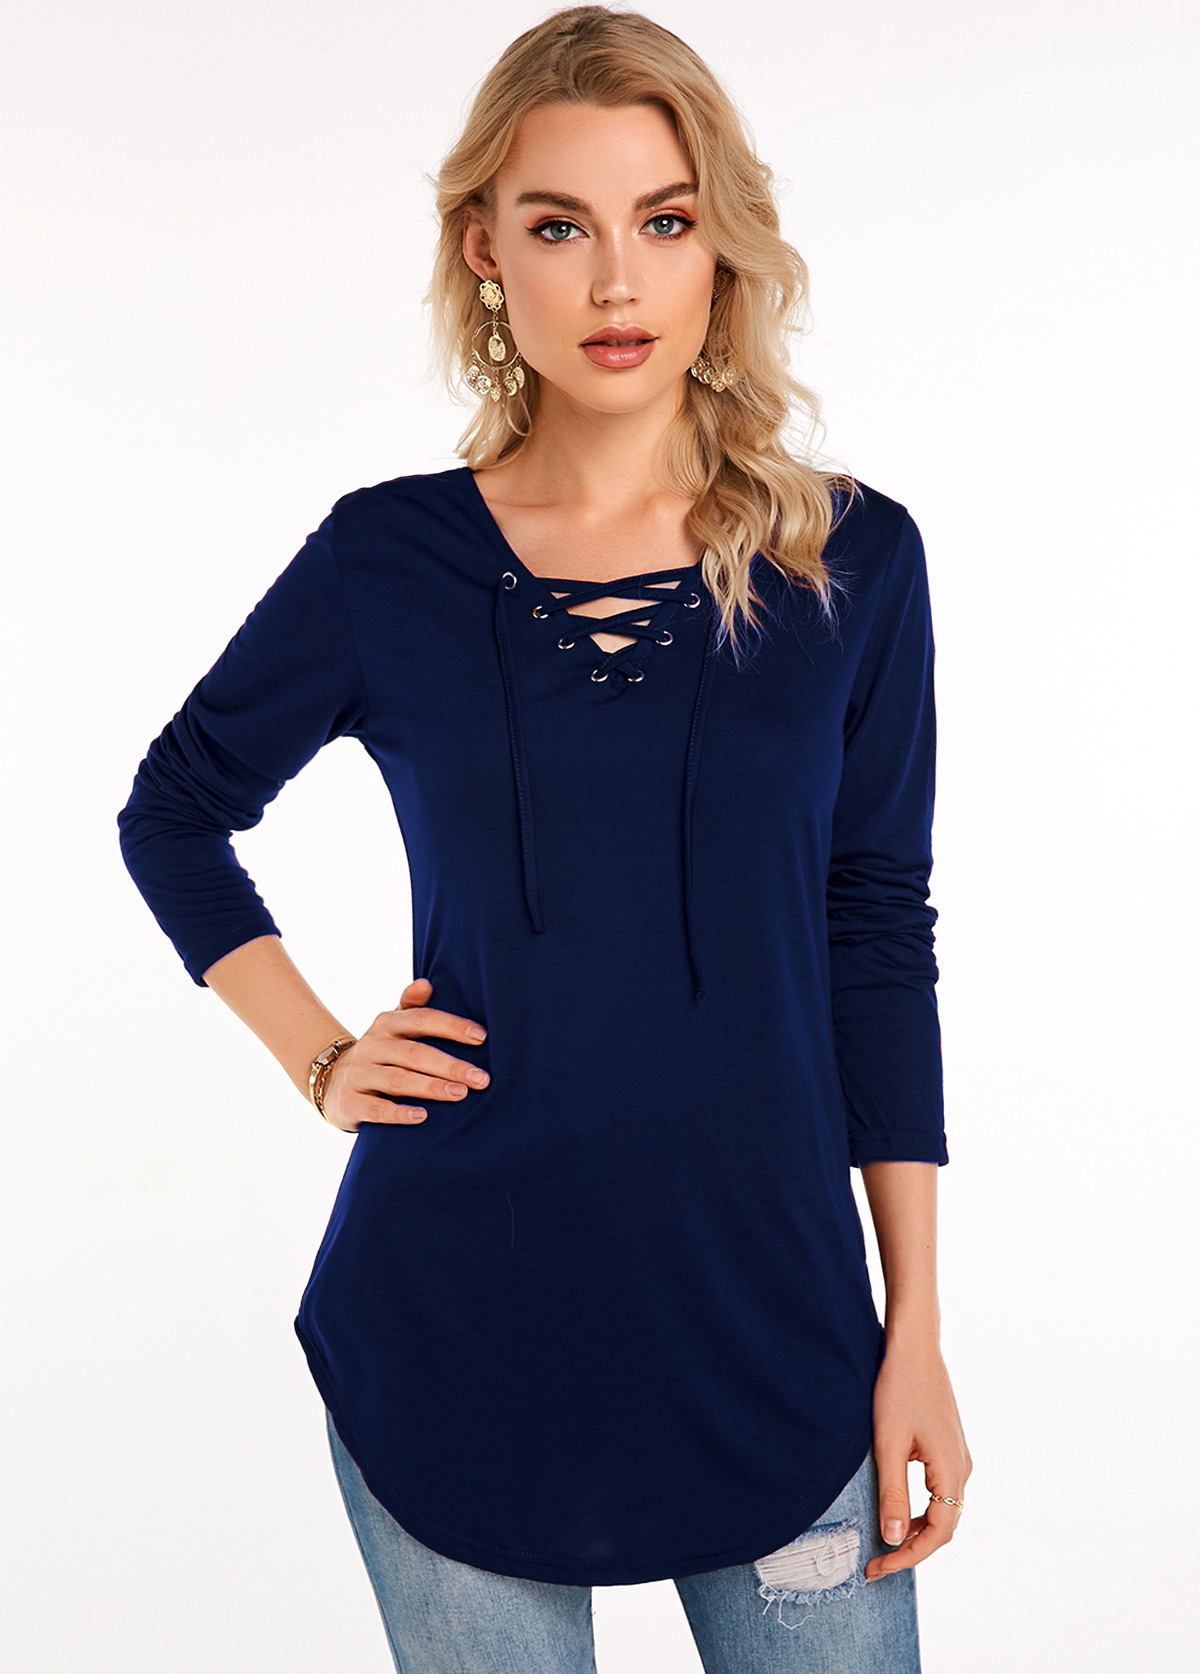 Navy Blue Lace Up Long Sleeve T Shirt